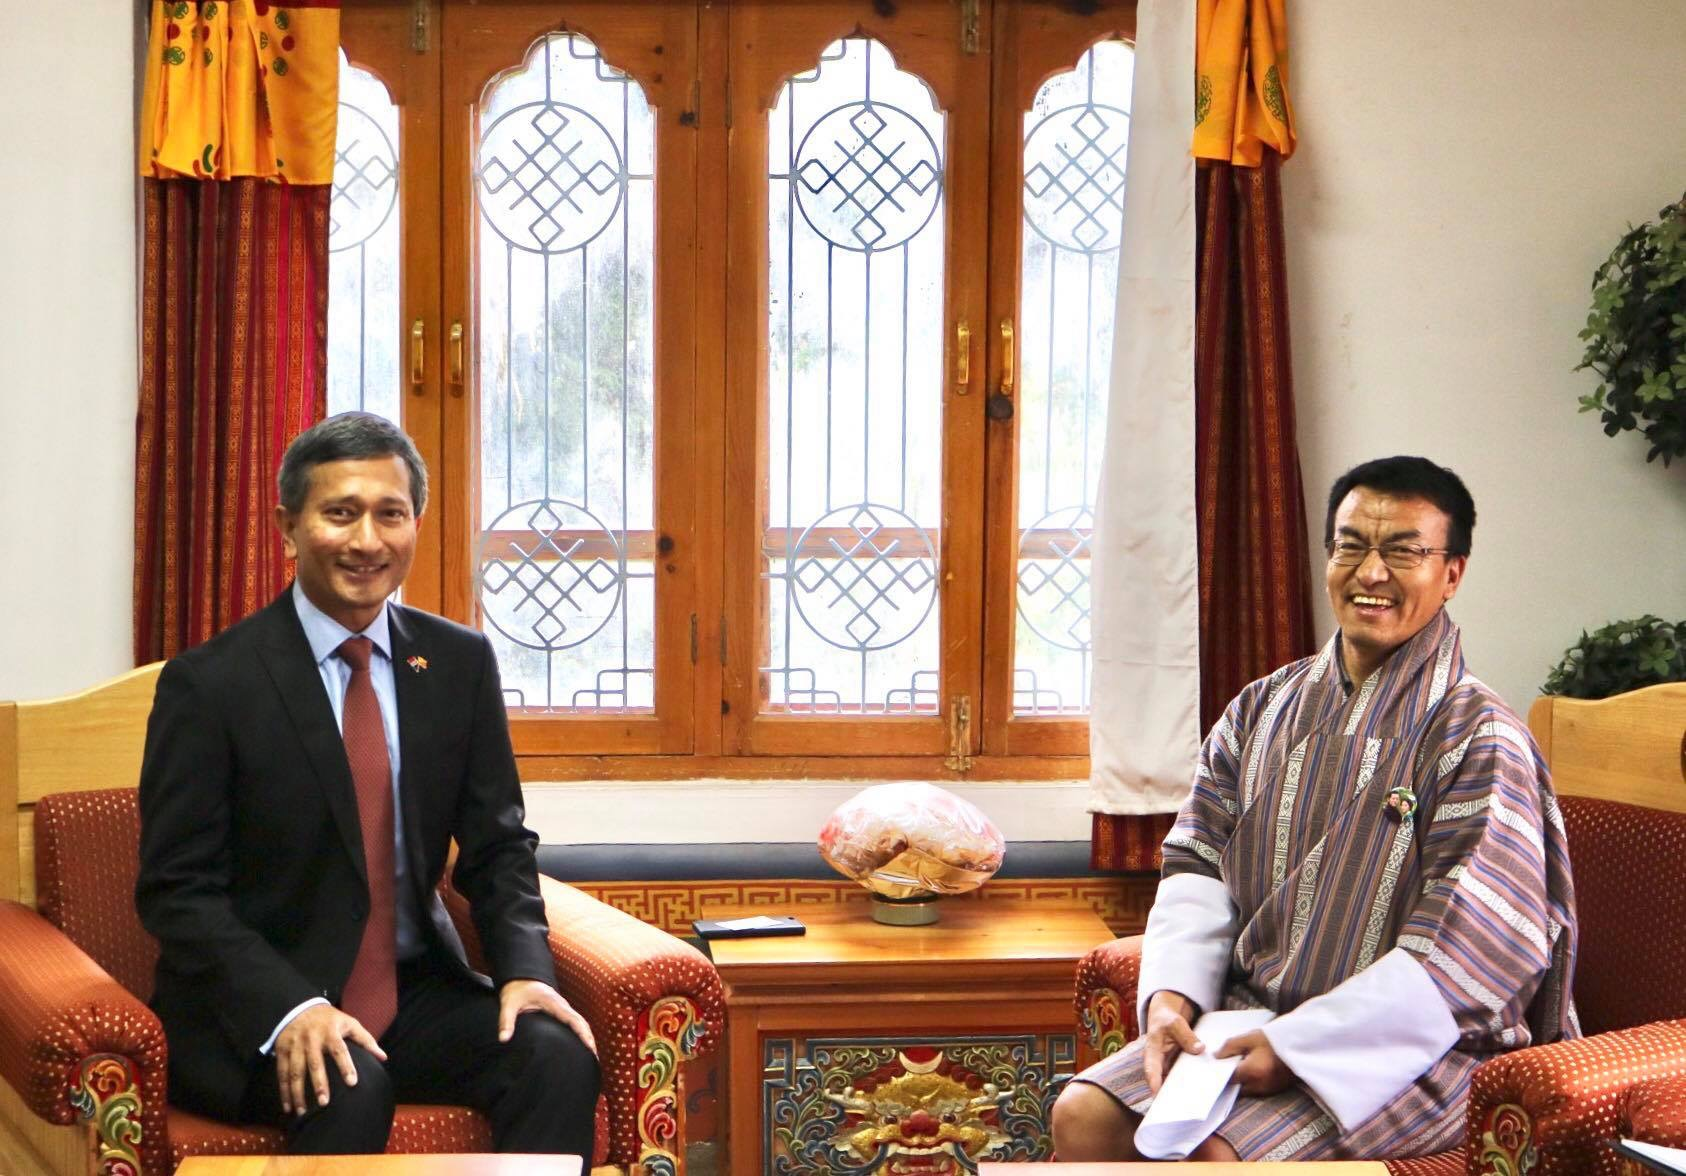 H E Dr Vivian Balakrishnan Minister For Foreign Affairs Of The Republic Singapore Made His Maiden Visit To Bhutan From 14 17 May 2017